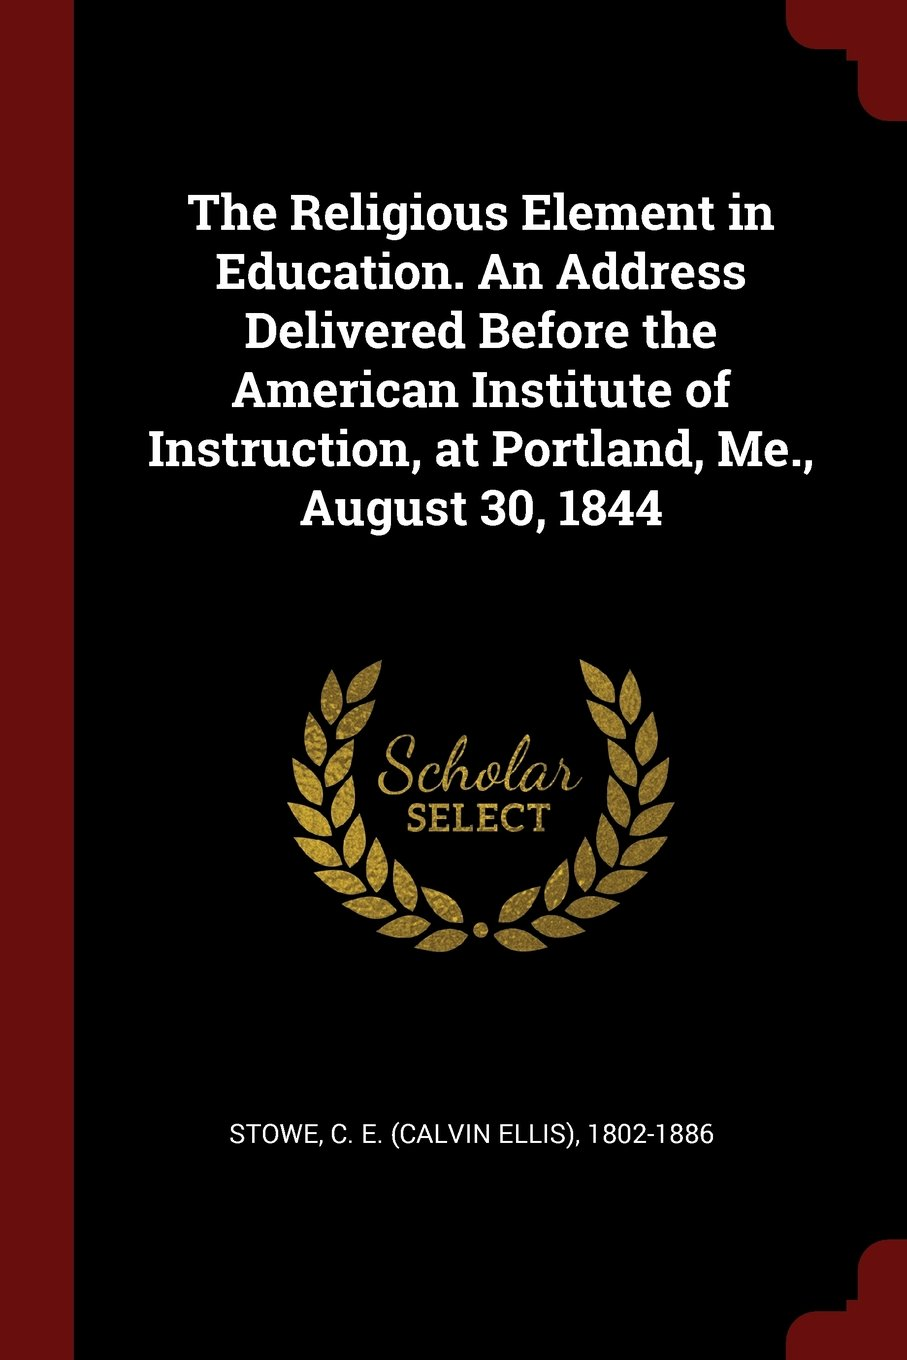 Download The Religious Element in Education. An Address Delivered Before the American Institute of Instruction, at Portland, Me., August 30, 1844 pdf epub